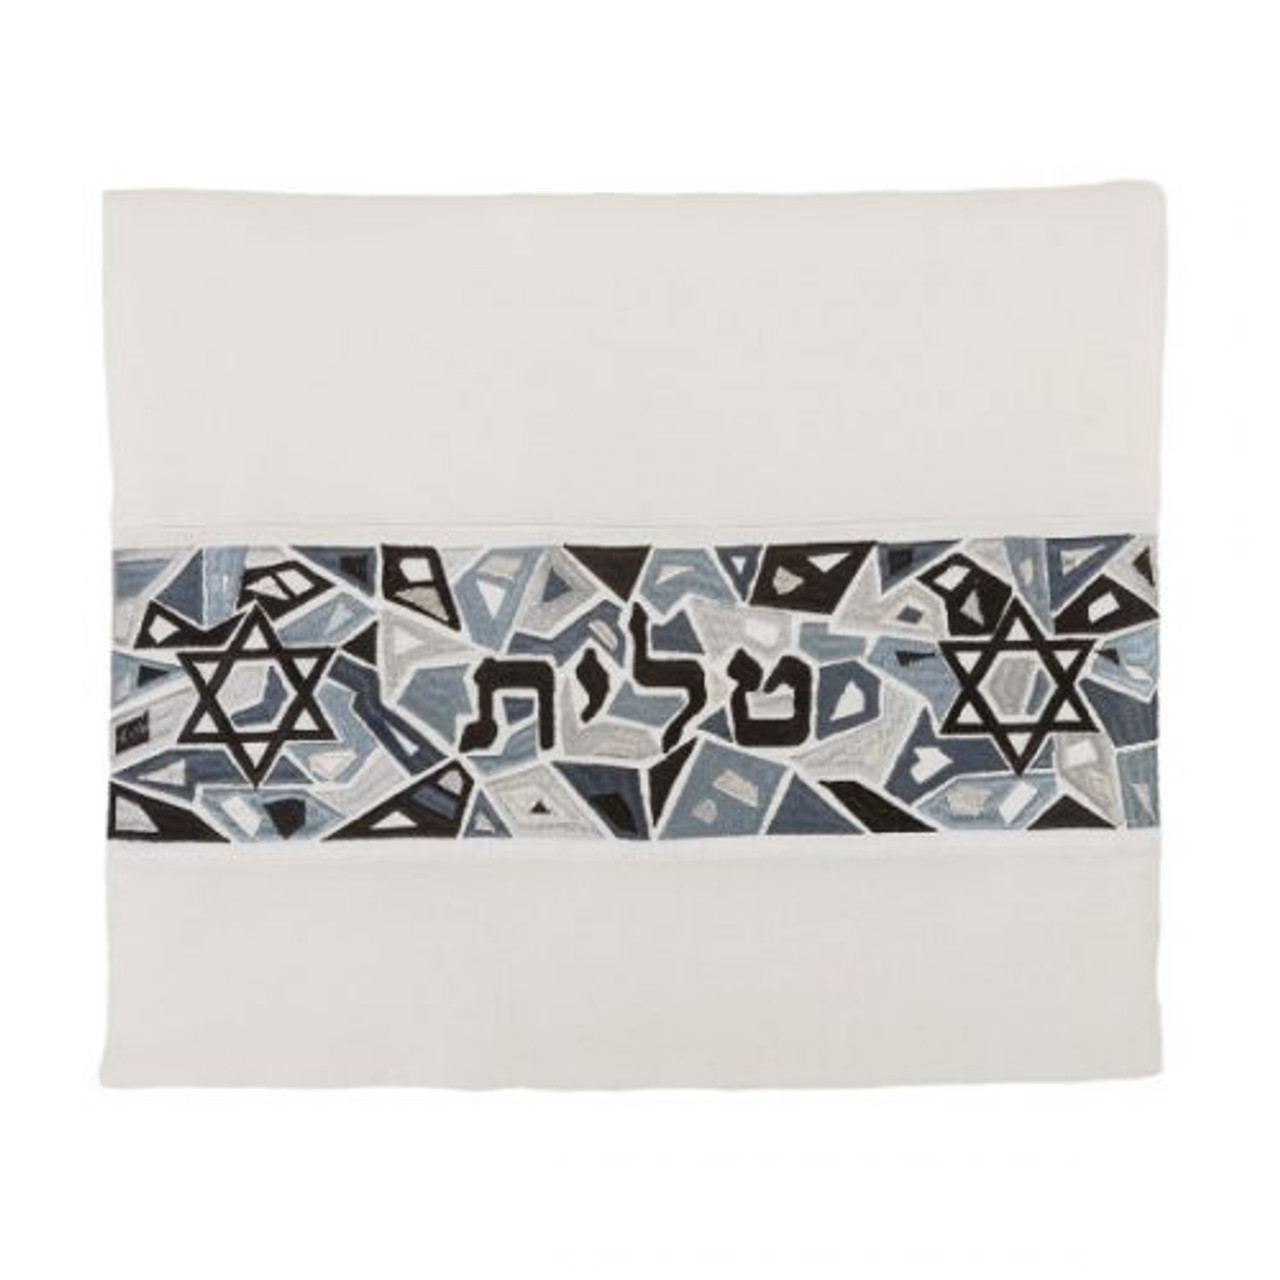 Black-Gray Magen David Geometric Pattern Tallit Bag